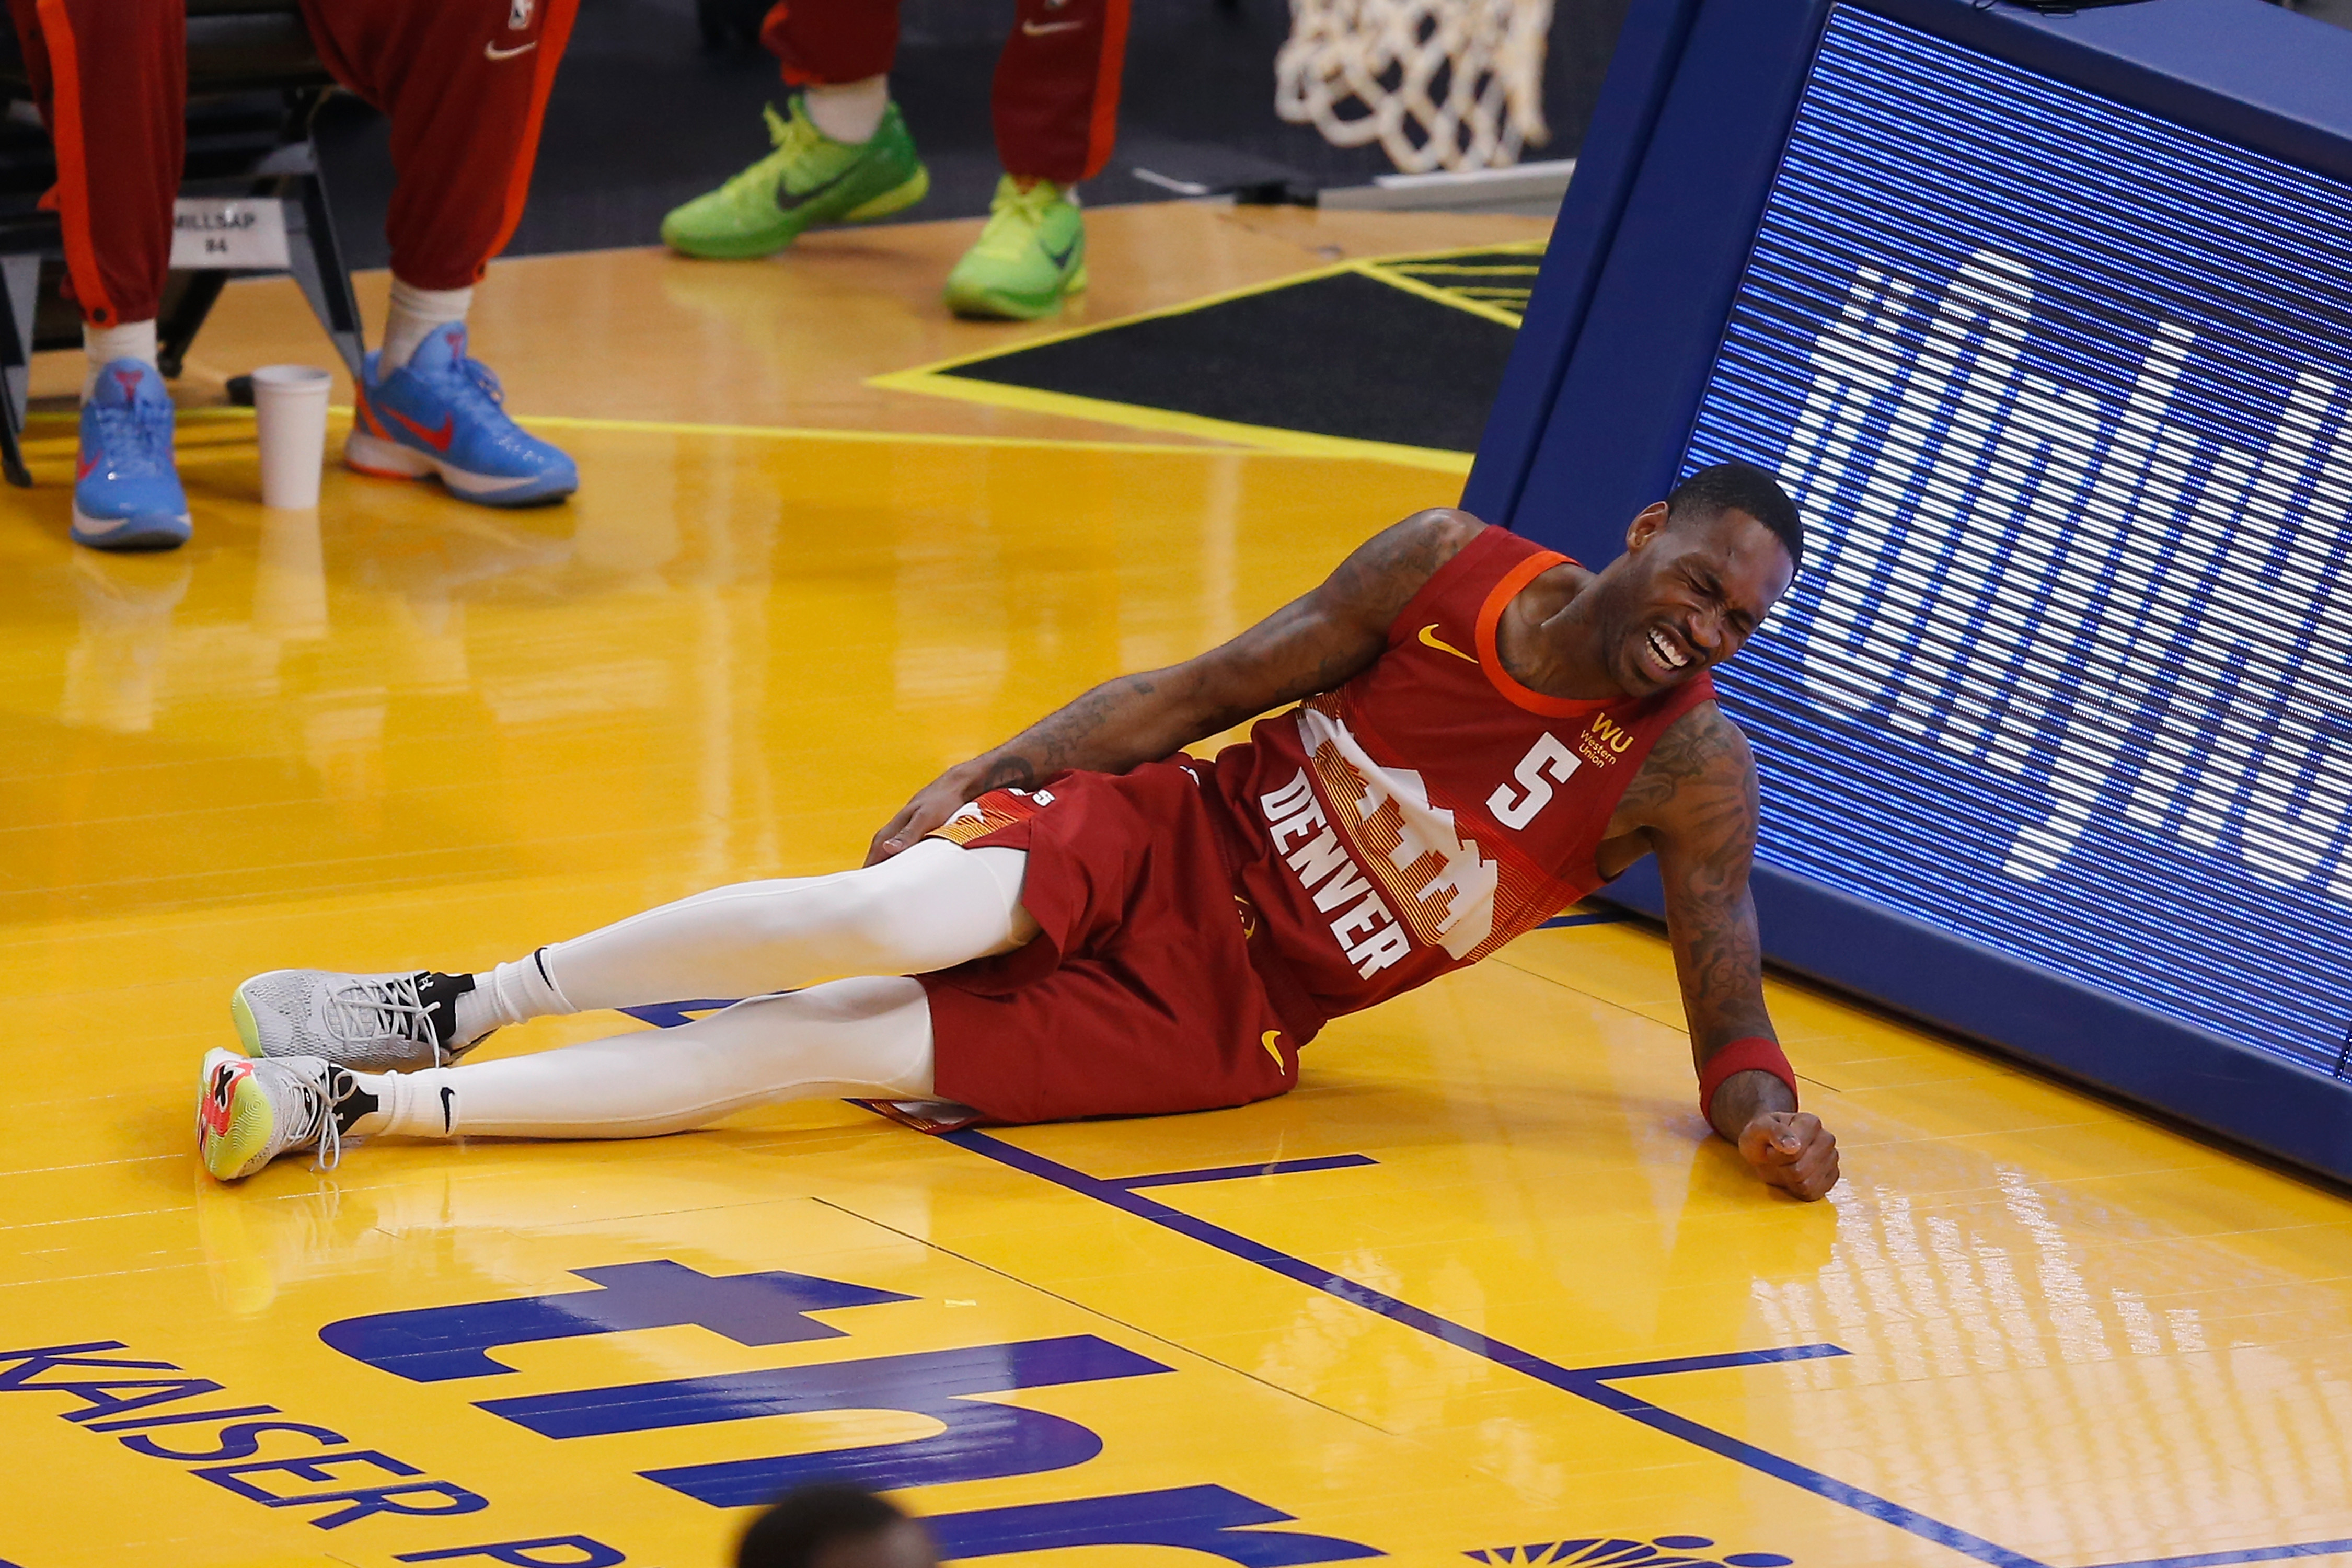 Will Barton of the Denver Nuggets grasps his leg after a play in the first quarter against the Golden State Warriors at Chase Center on April 23, 2021 in San Francisco, California.